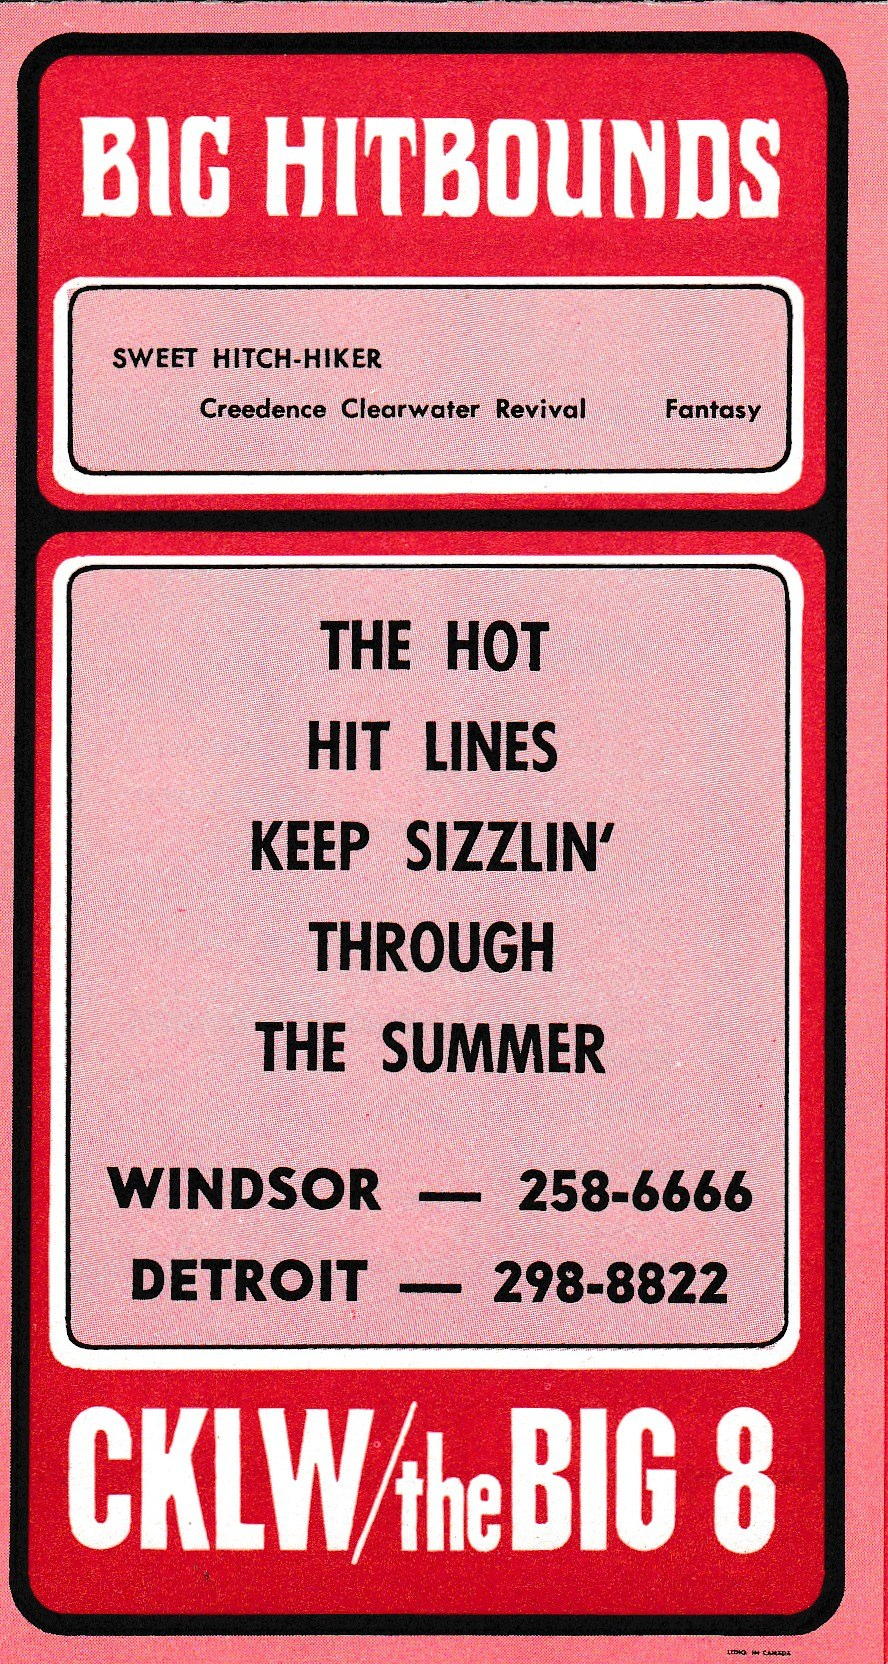 CKLW SURVEY BACK - JULY 5, 1971